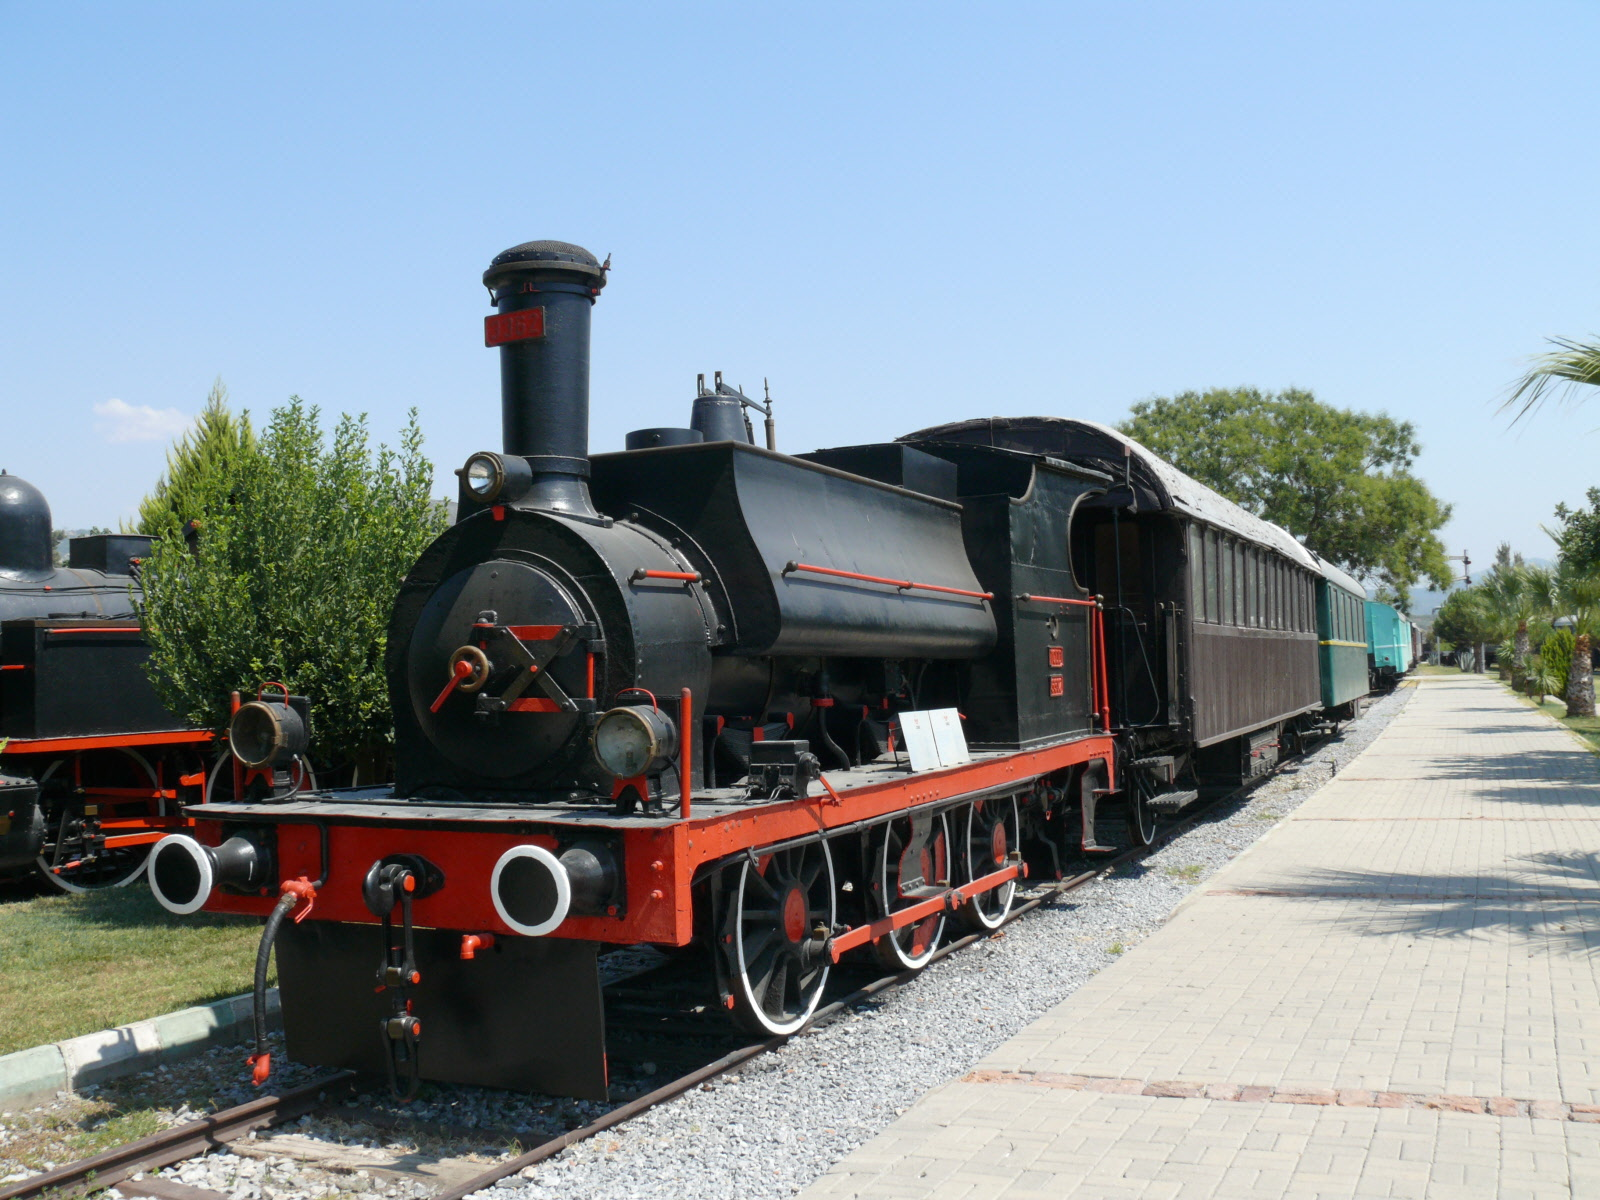 Photos from the Çamlik Railroad Museum, 2009